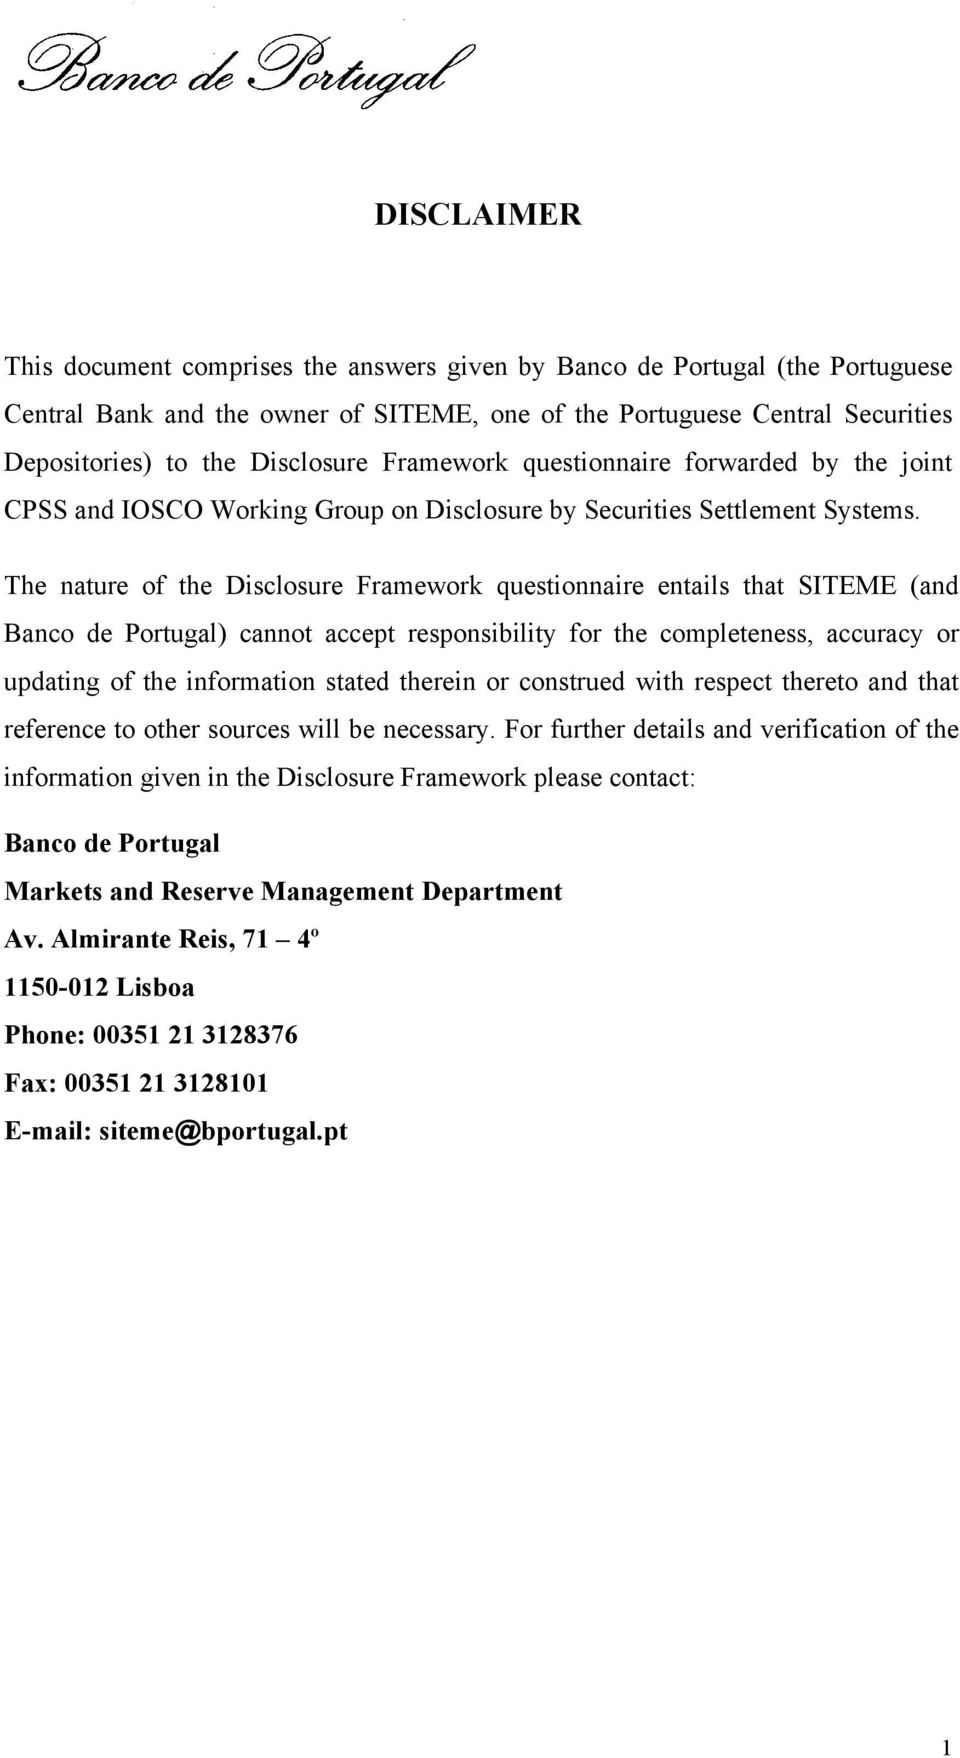 The nature of the Disclosure Framework questionnaire entails that SITEME (and Banco de Portugal) cannot accept responsibility for the completeness, accuracy or updating of the information stated